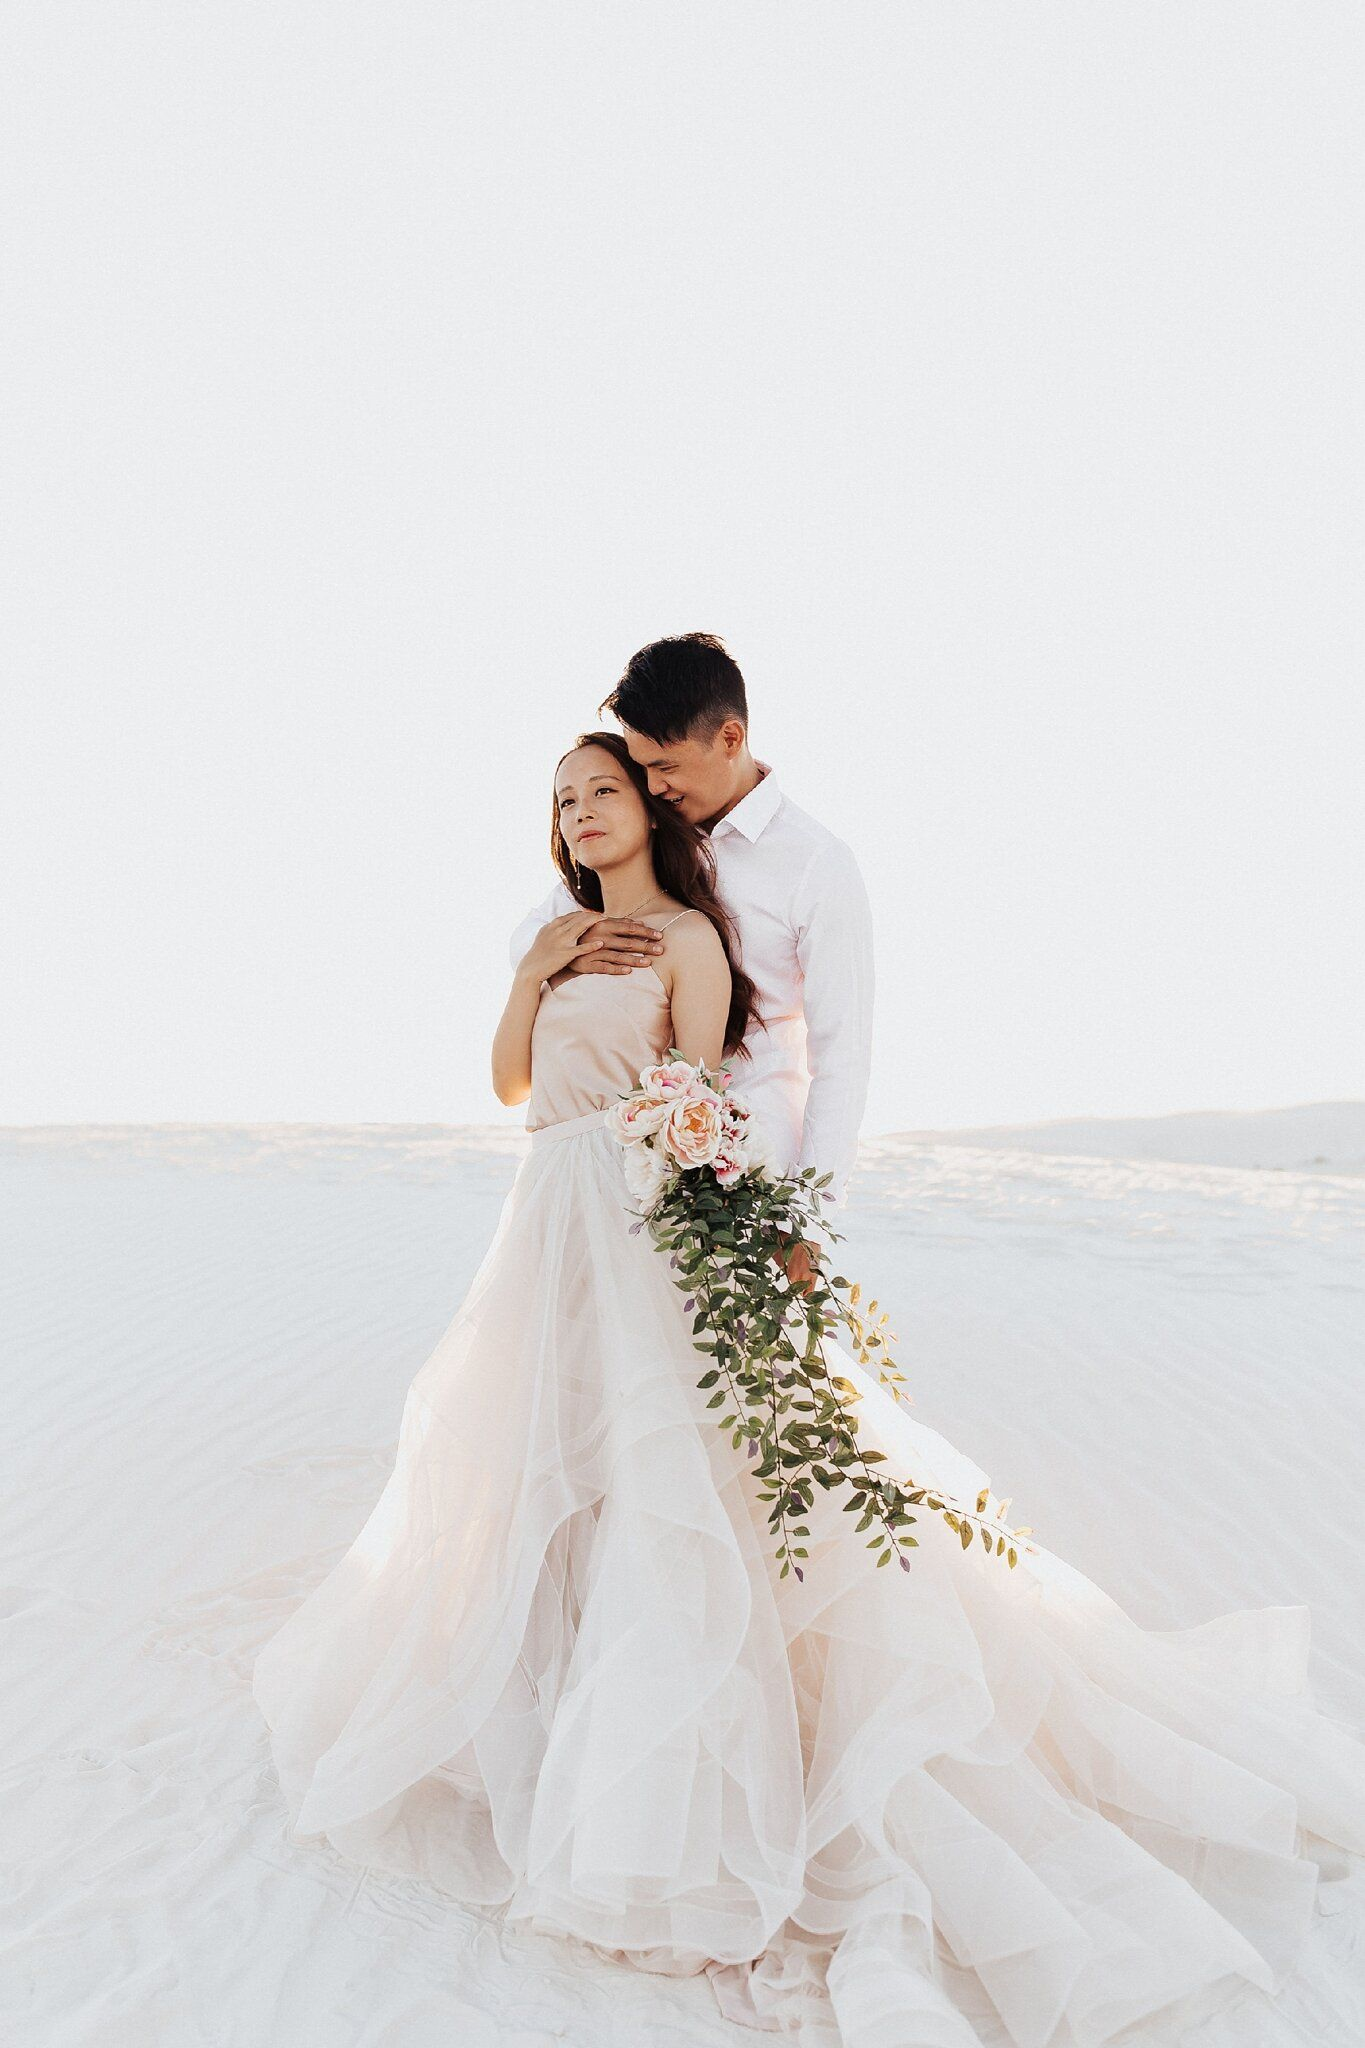 2020 Moments With Alicia Lucia Photography Alicia Lucia Photography Albuquerque And Santa Fe New Mexico Wedding And Portrait Photographer In 2021 Denver Wedding Photography York Wedding Photography Intimate Wedding Photography [ 2048 x 1365 Pixel ]